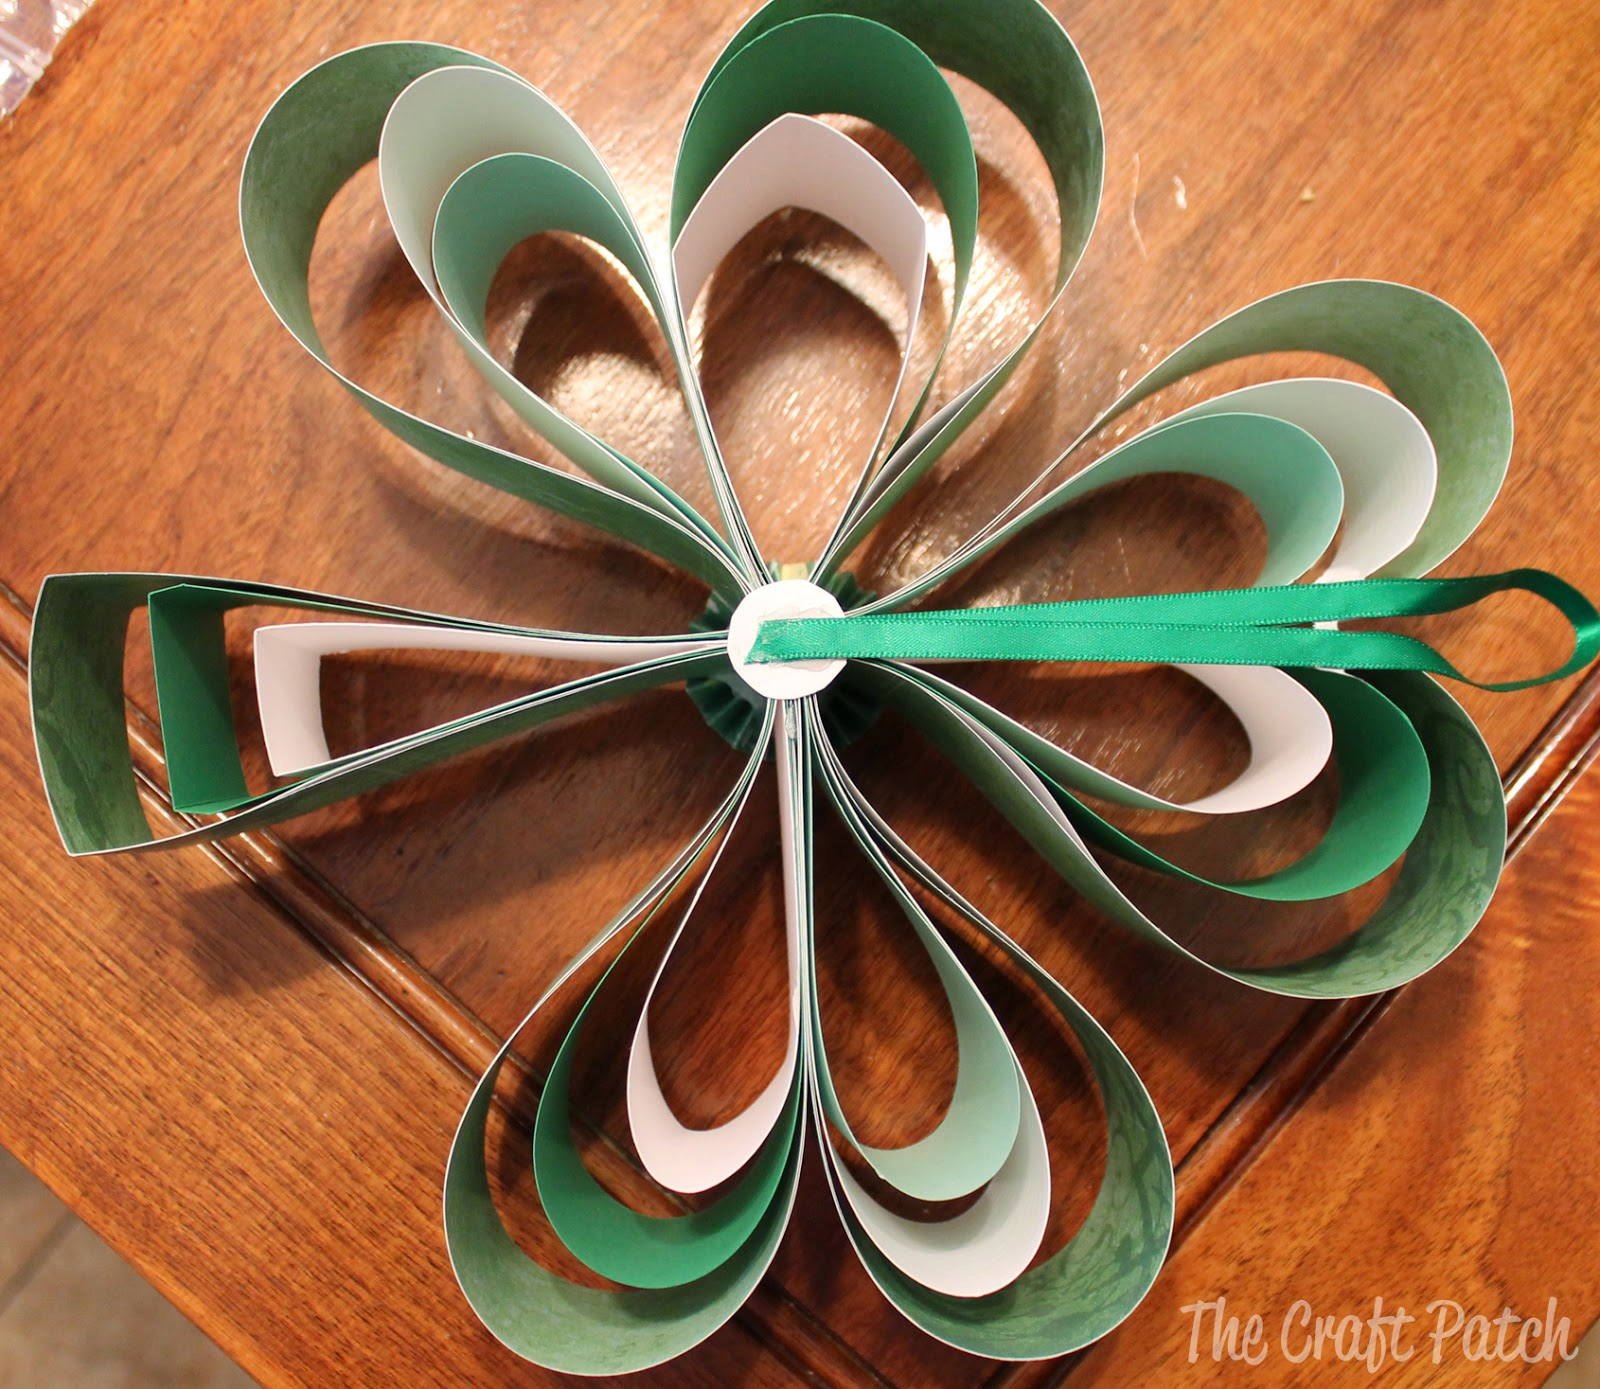 Dress Up Your Home For St. Patrick's Day by Making This Cute Wreath Out of Scrapbook Paper!8